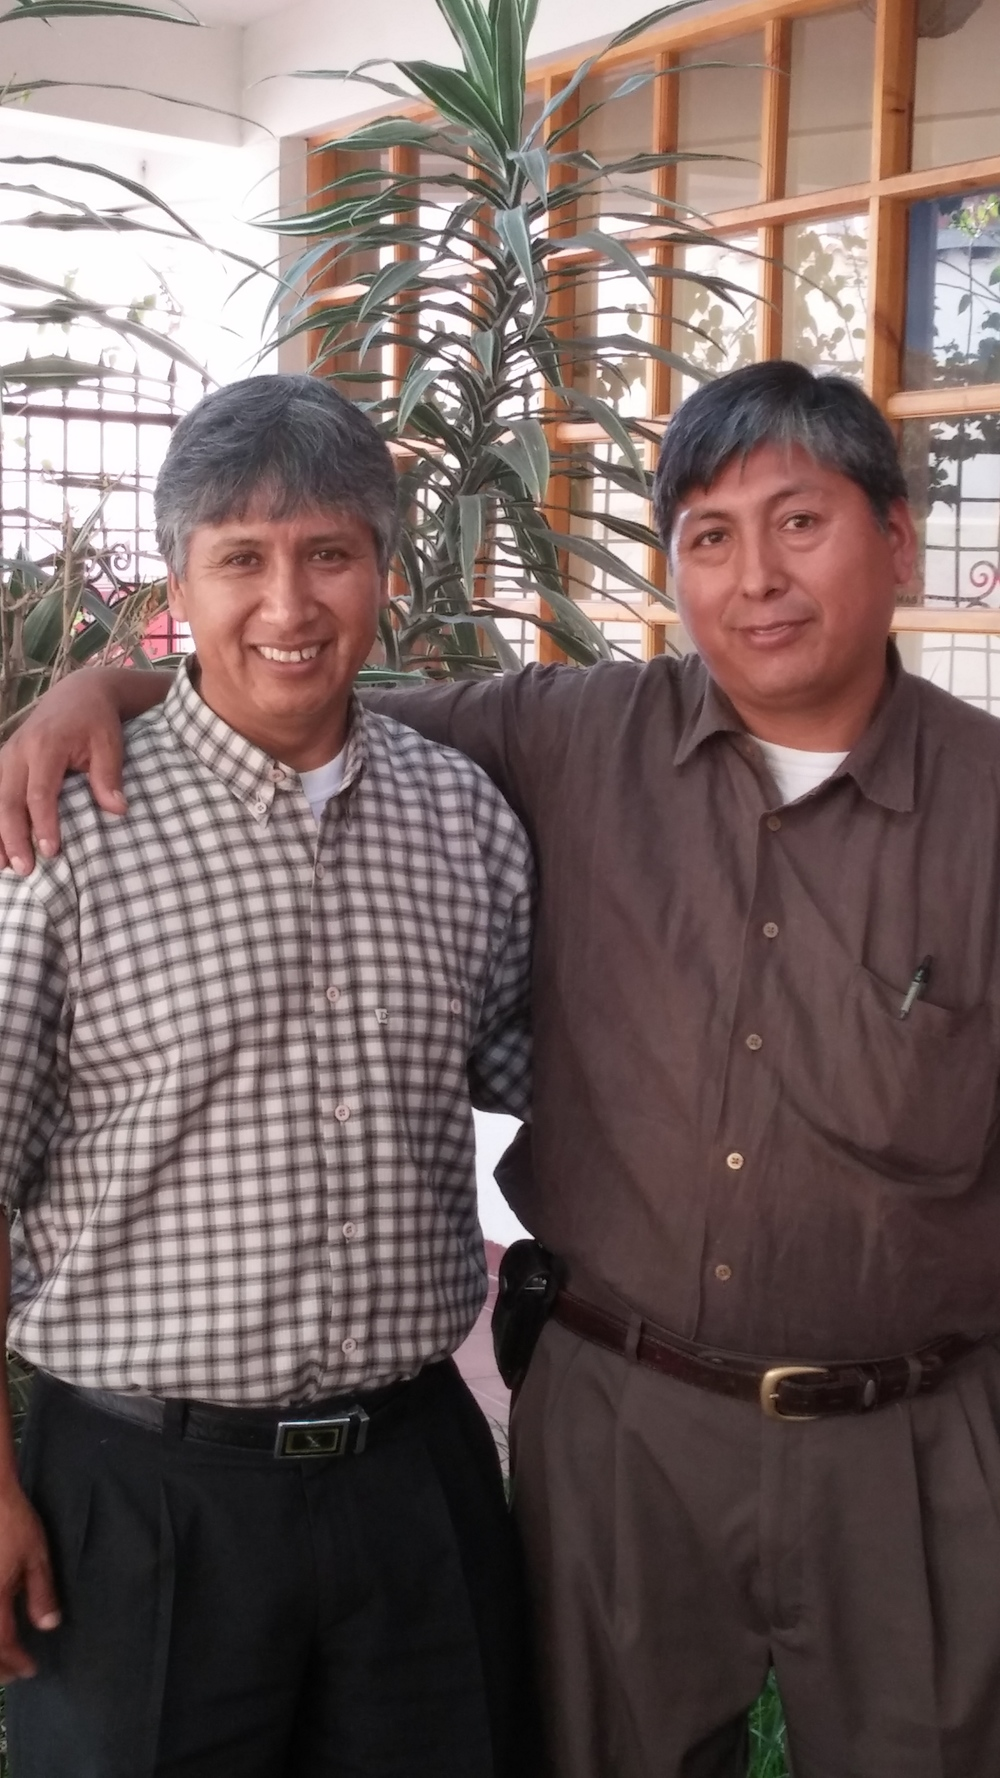 Dr. Jaime and our local Medical Supplies Coordinator, José Choque, worked together to conceive and develop the Solidarity Bridge Mobile Laparoscopic Surgery Unit, which now takes updated surgery techniques to Bolivia's rural poor who most need them.